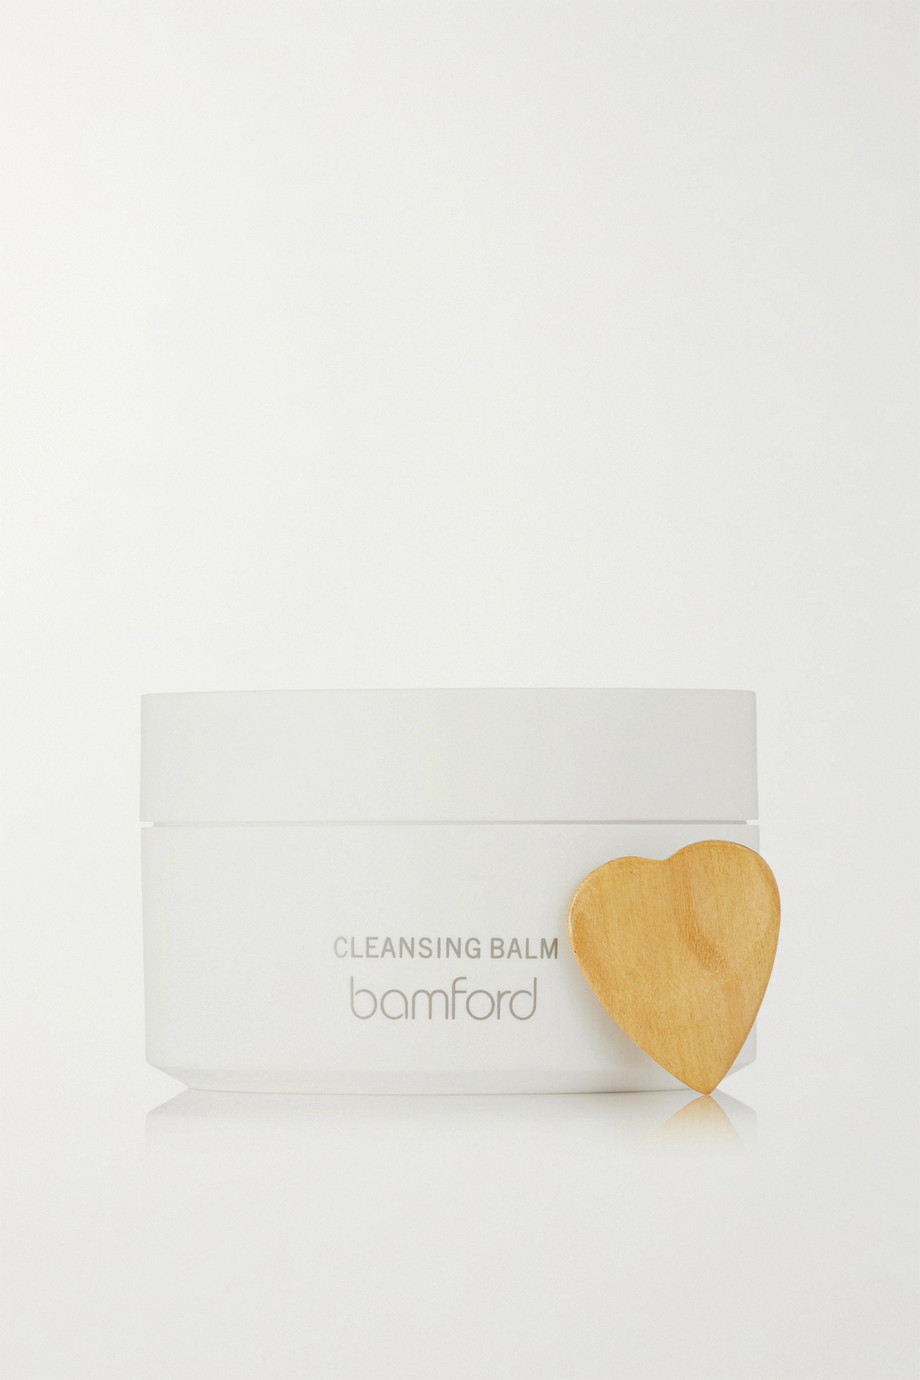 Bamford Cleansing Balm, 100ml